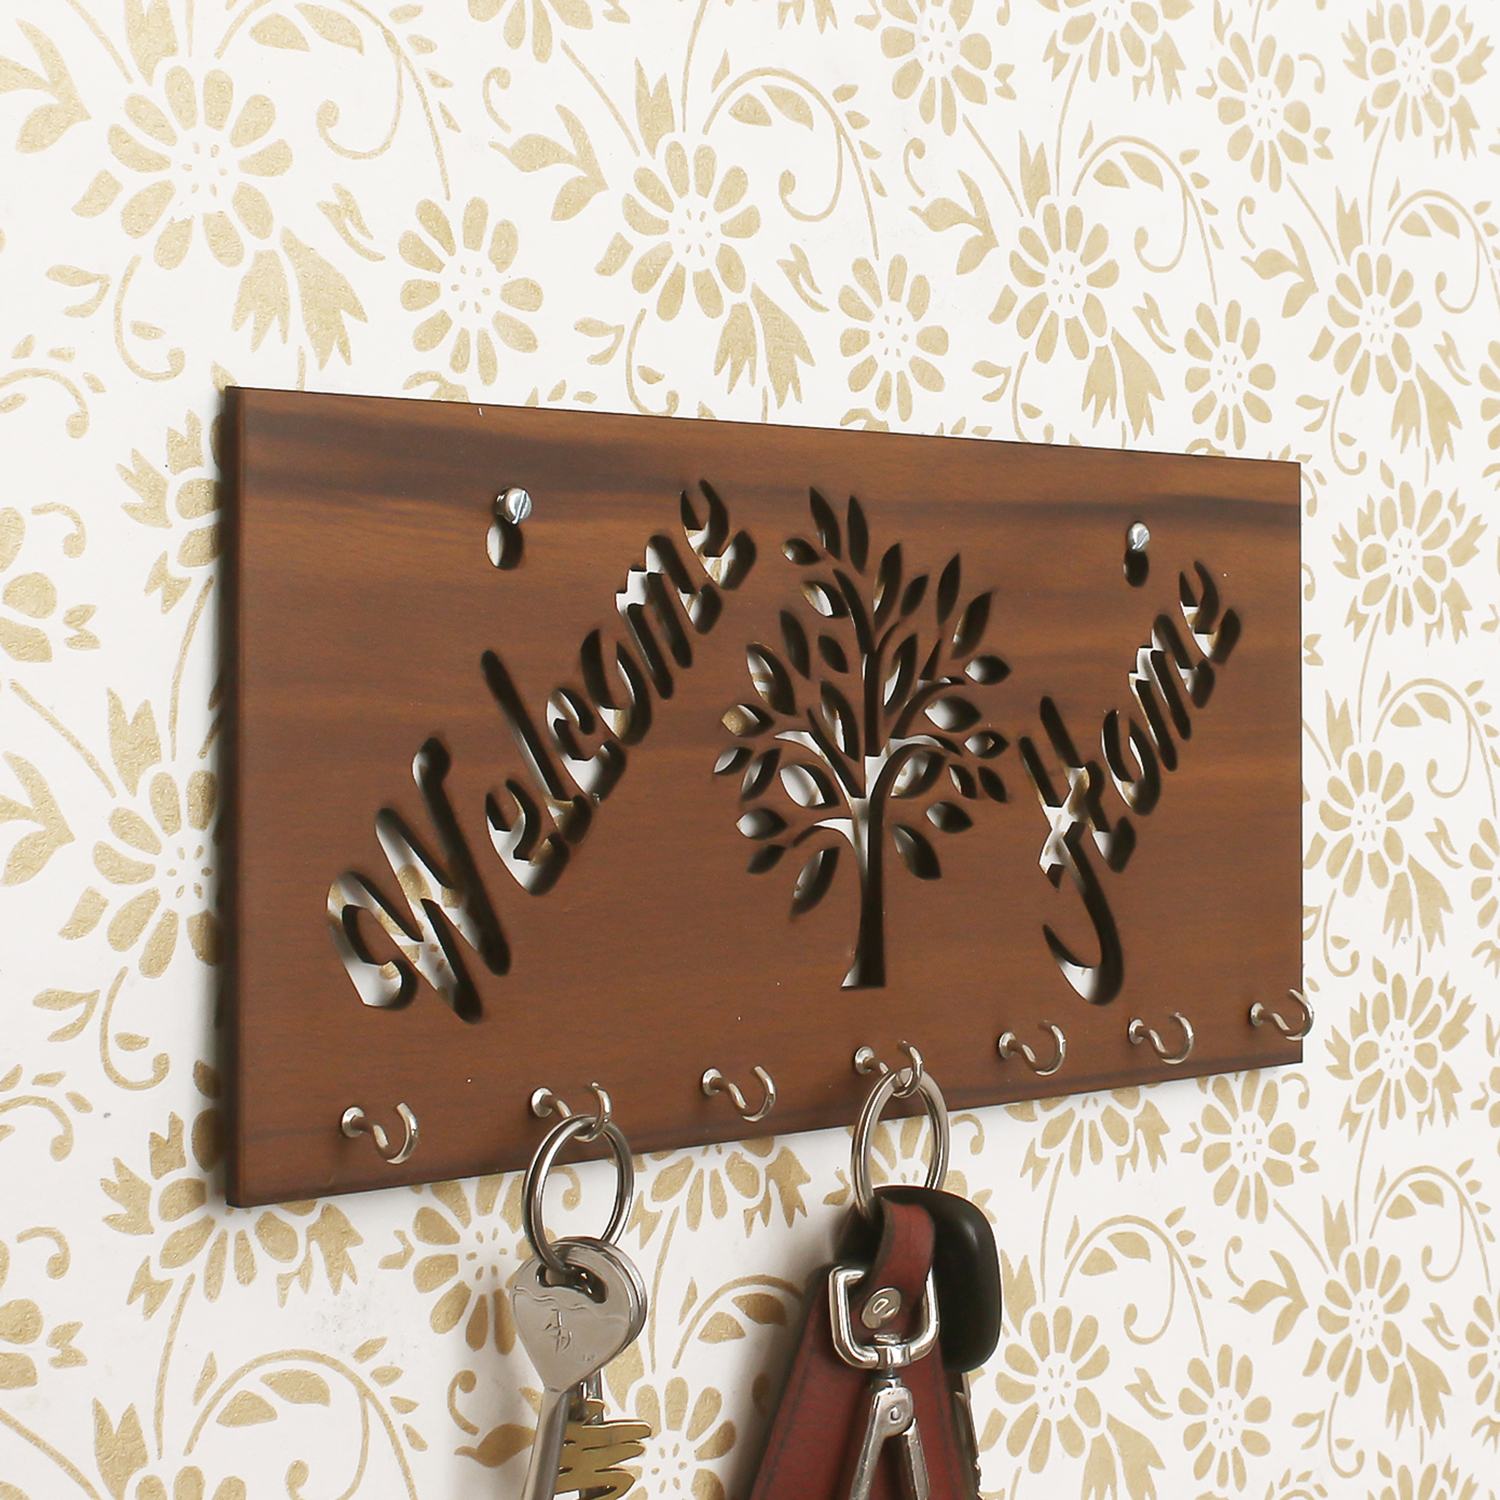 Welcome Home Theme Wooden Key Holder with 7 Hooks Indian Home Decor